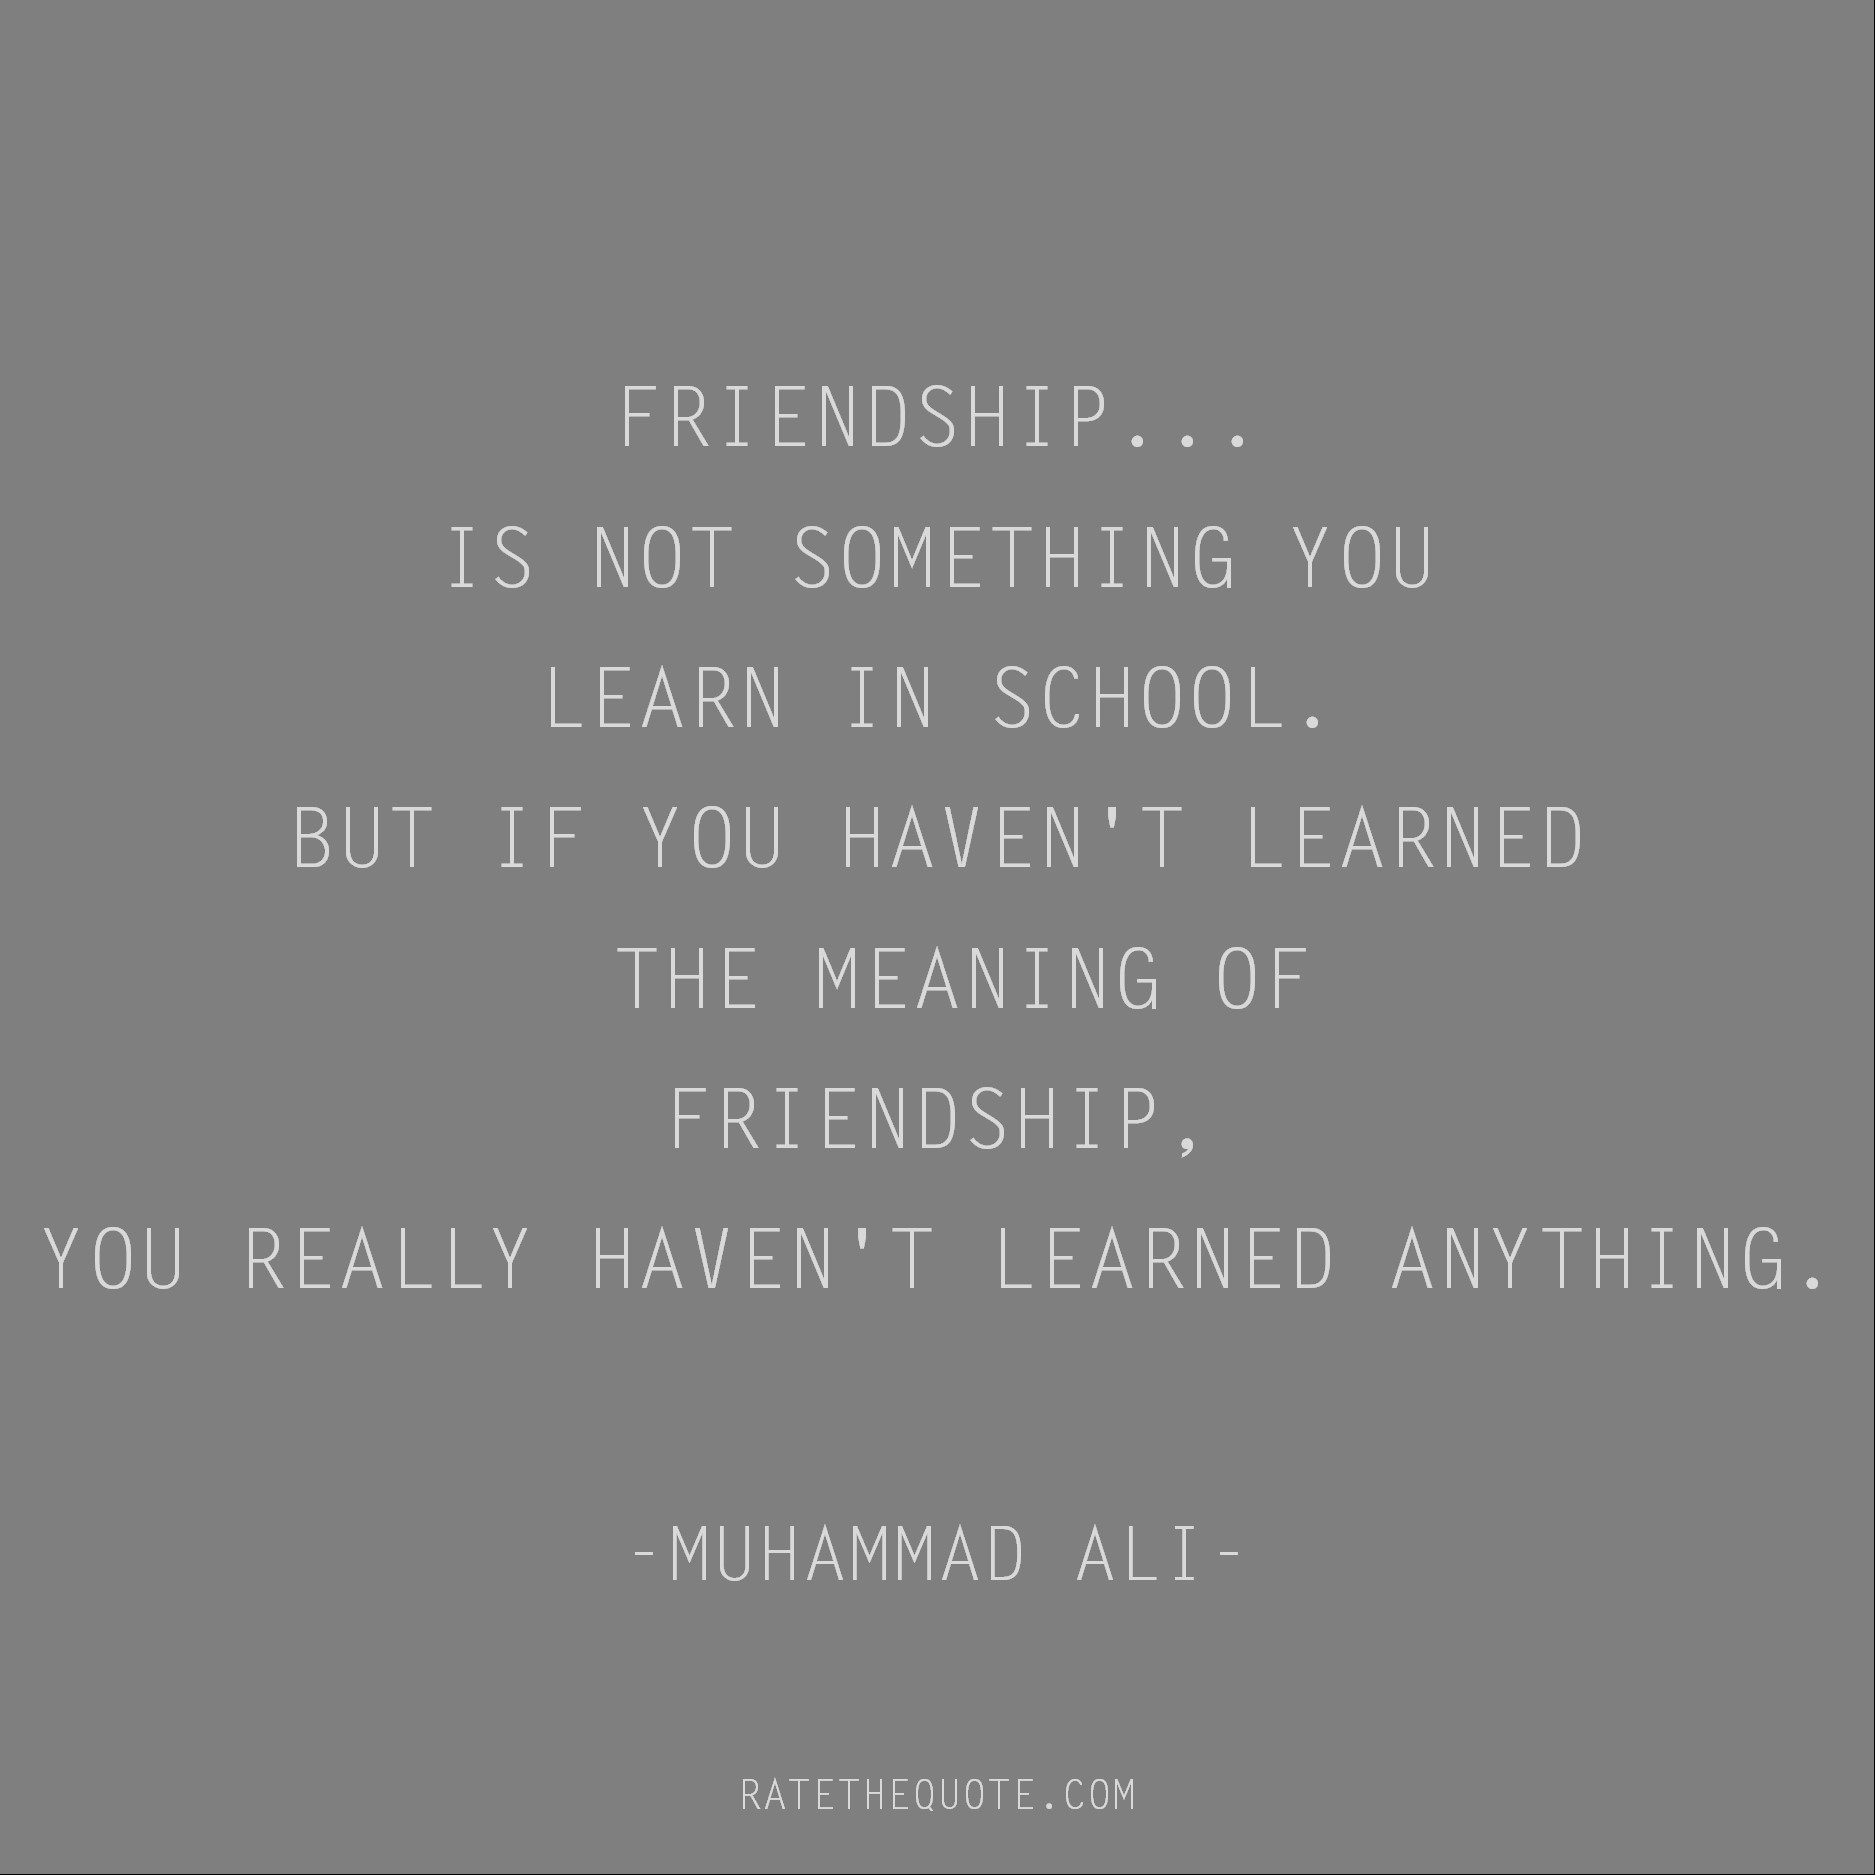 Friendship Quotes Friendship... is not something you learn in school. But if you haven't learned the meaning of friendship, you really haven't learned anything. Muhammad Ali